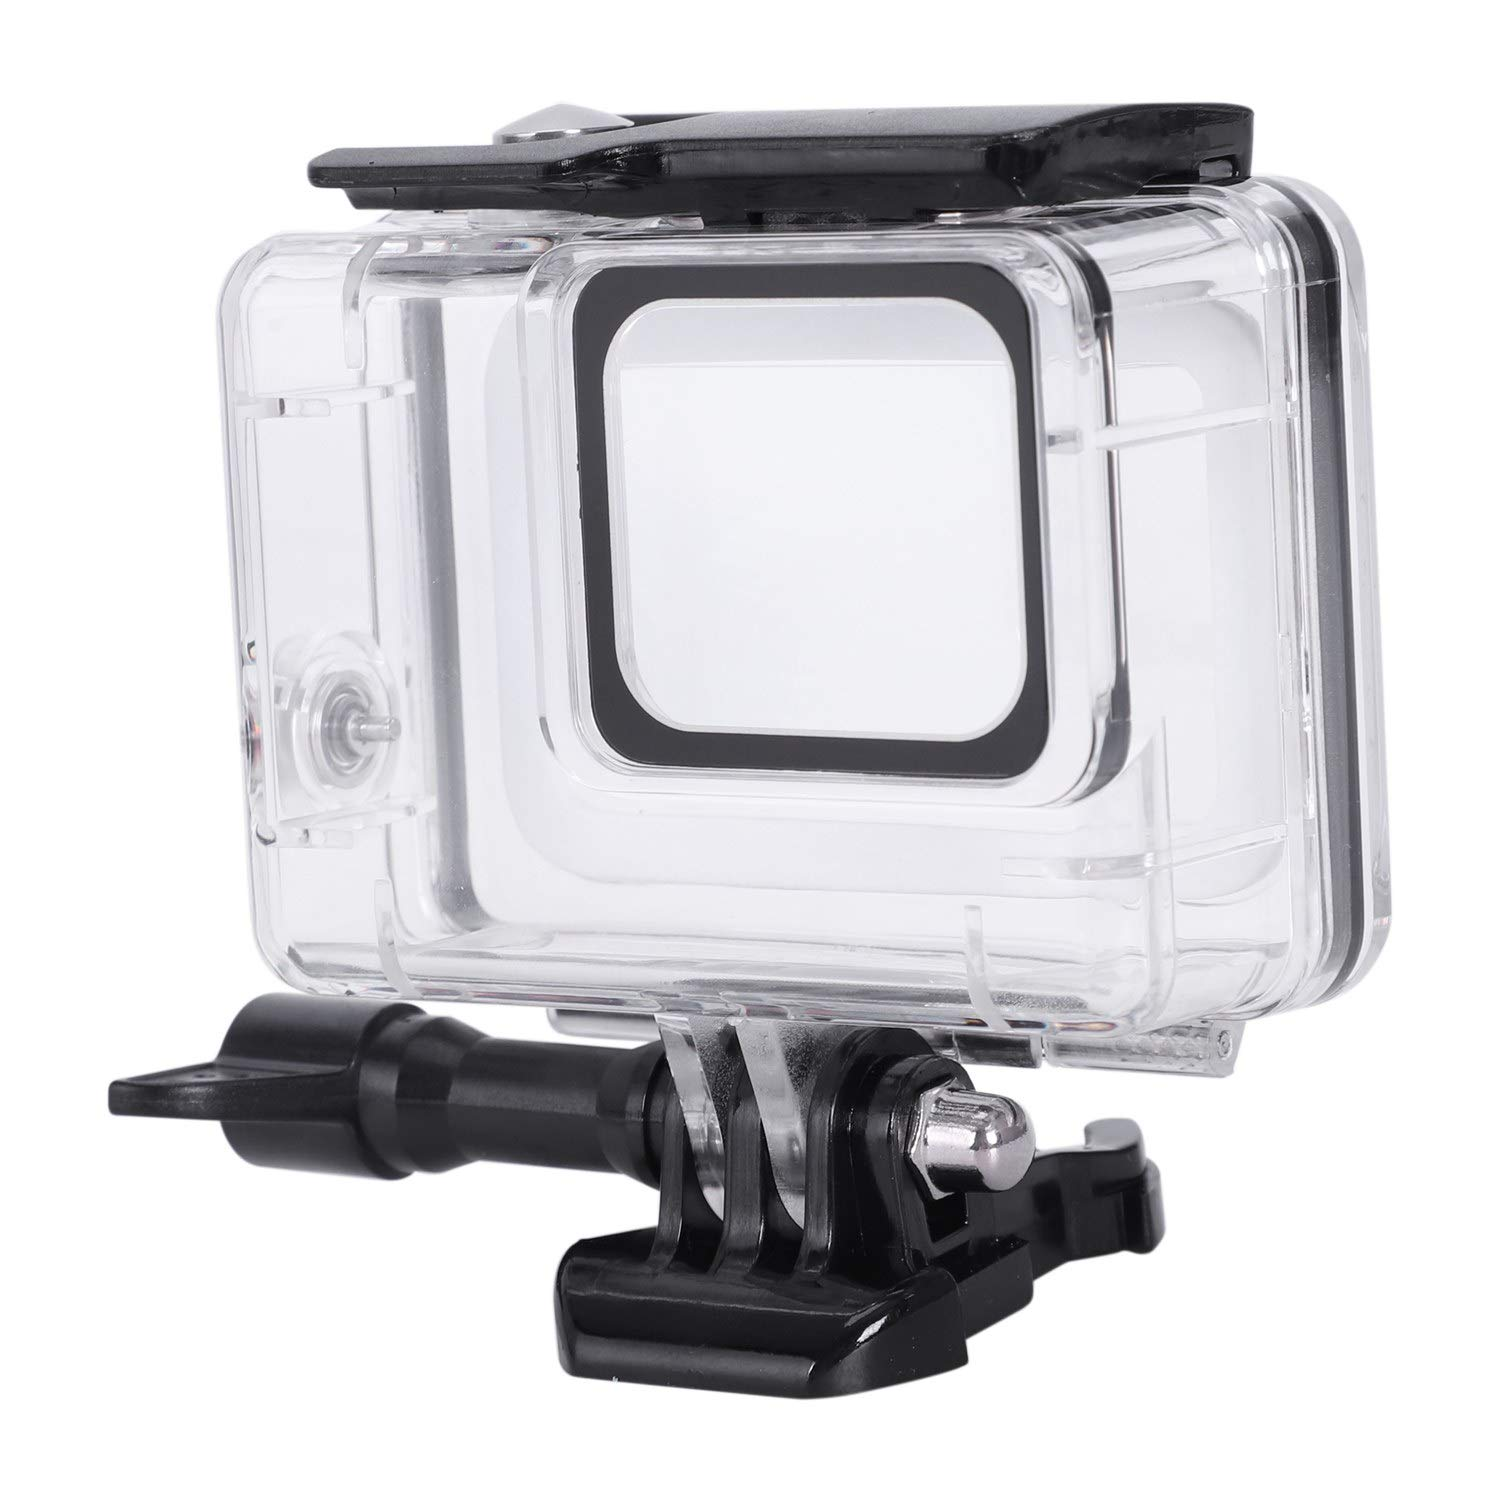 Protective 45m Underwater Dive Case Shell with Bracket Accessories for Go Pro Hero7 Action Camera Iycorish Waterproof Housing for Hero7 White and Hero7 Silver